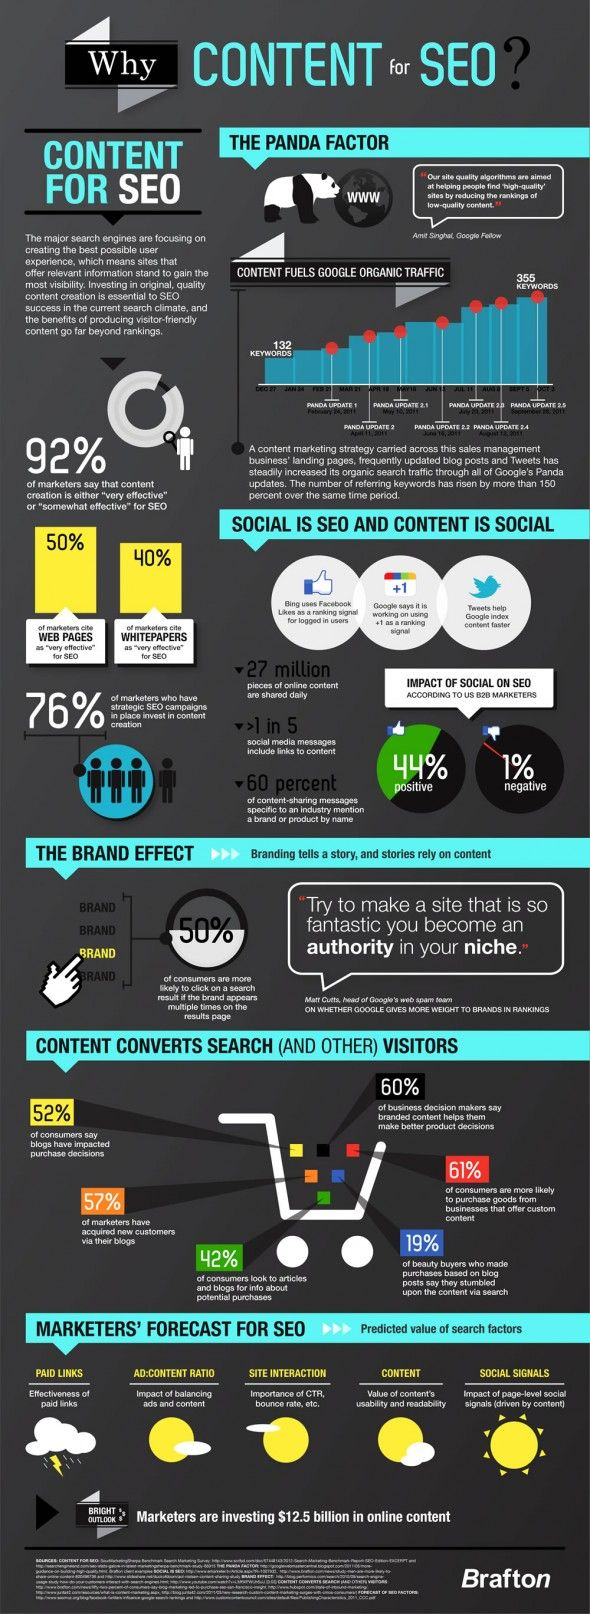 #INFOGRAPHIC: WHY CONTENT FOR SEO?